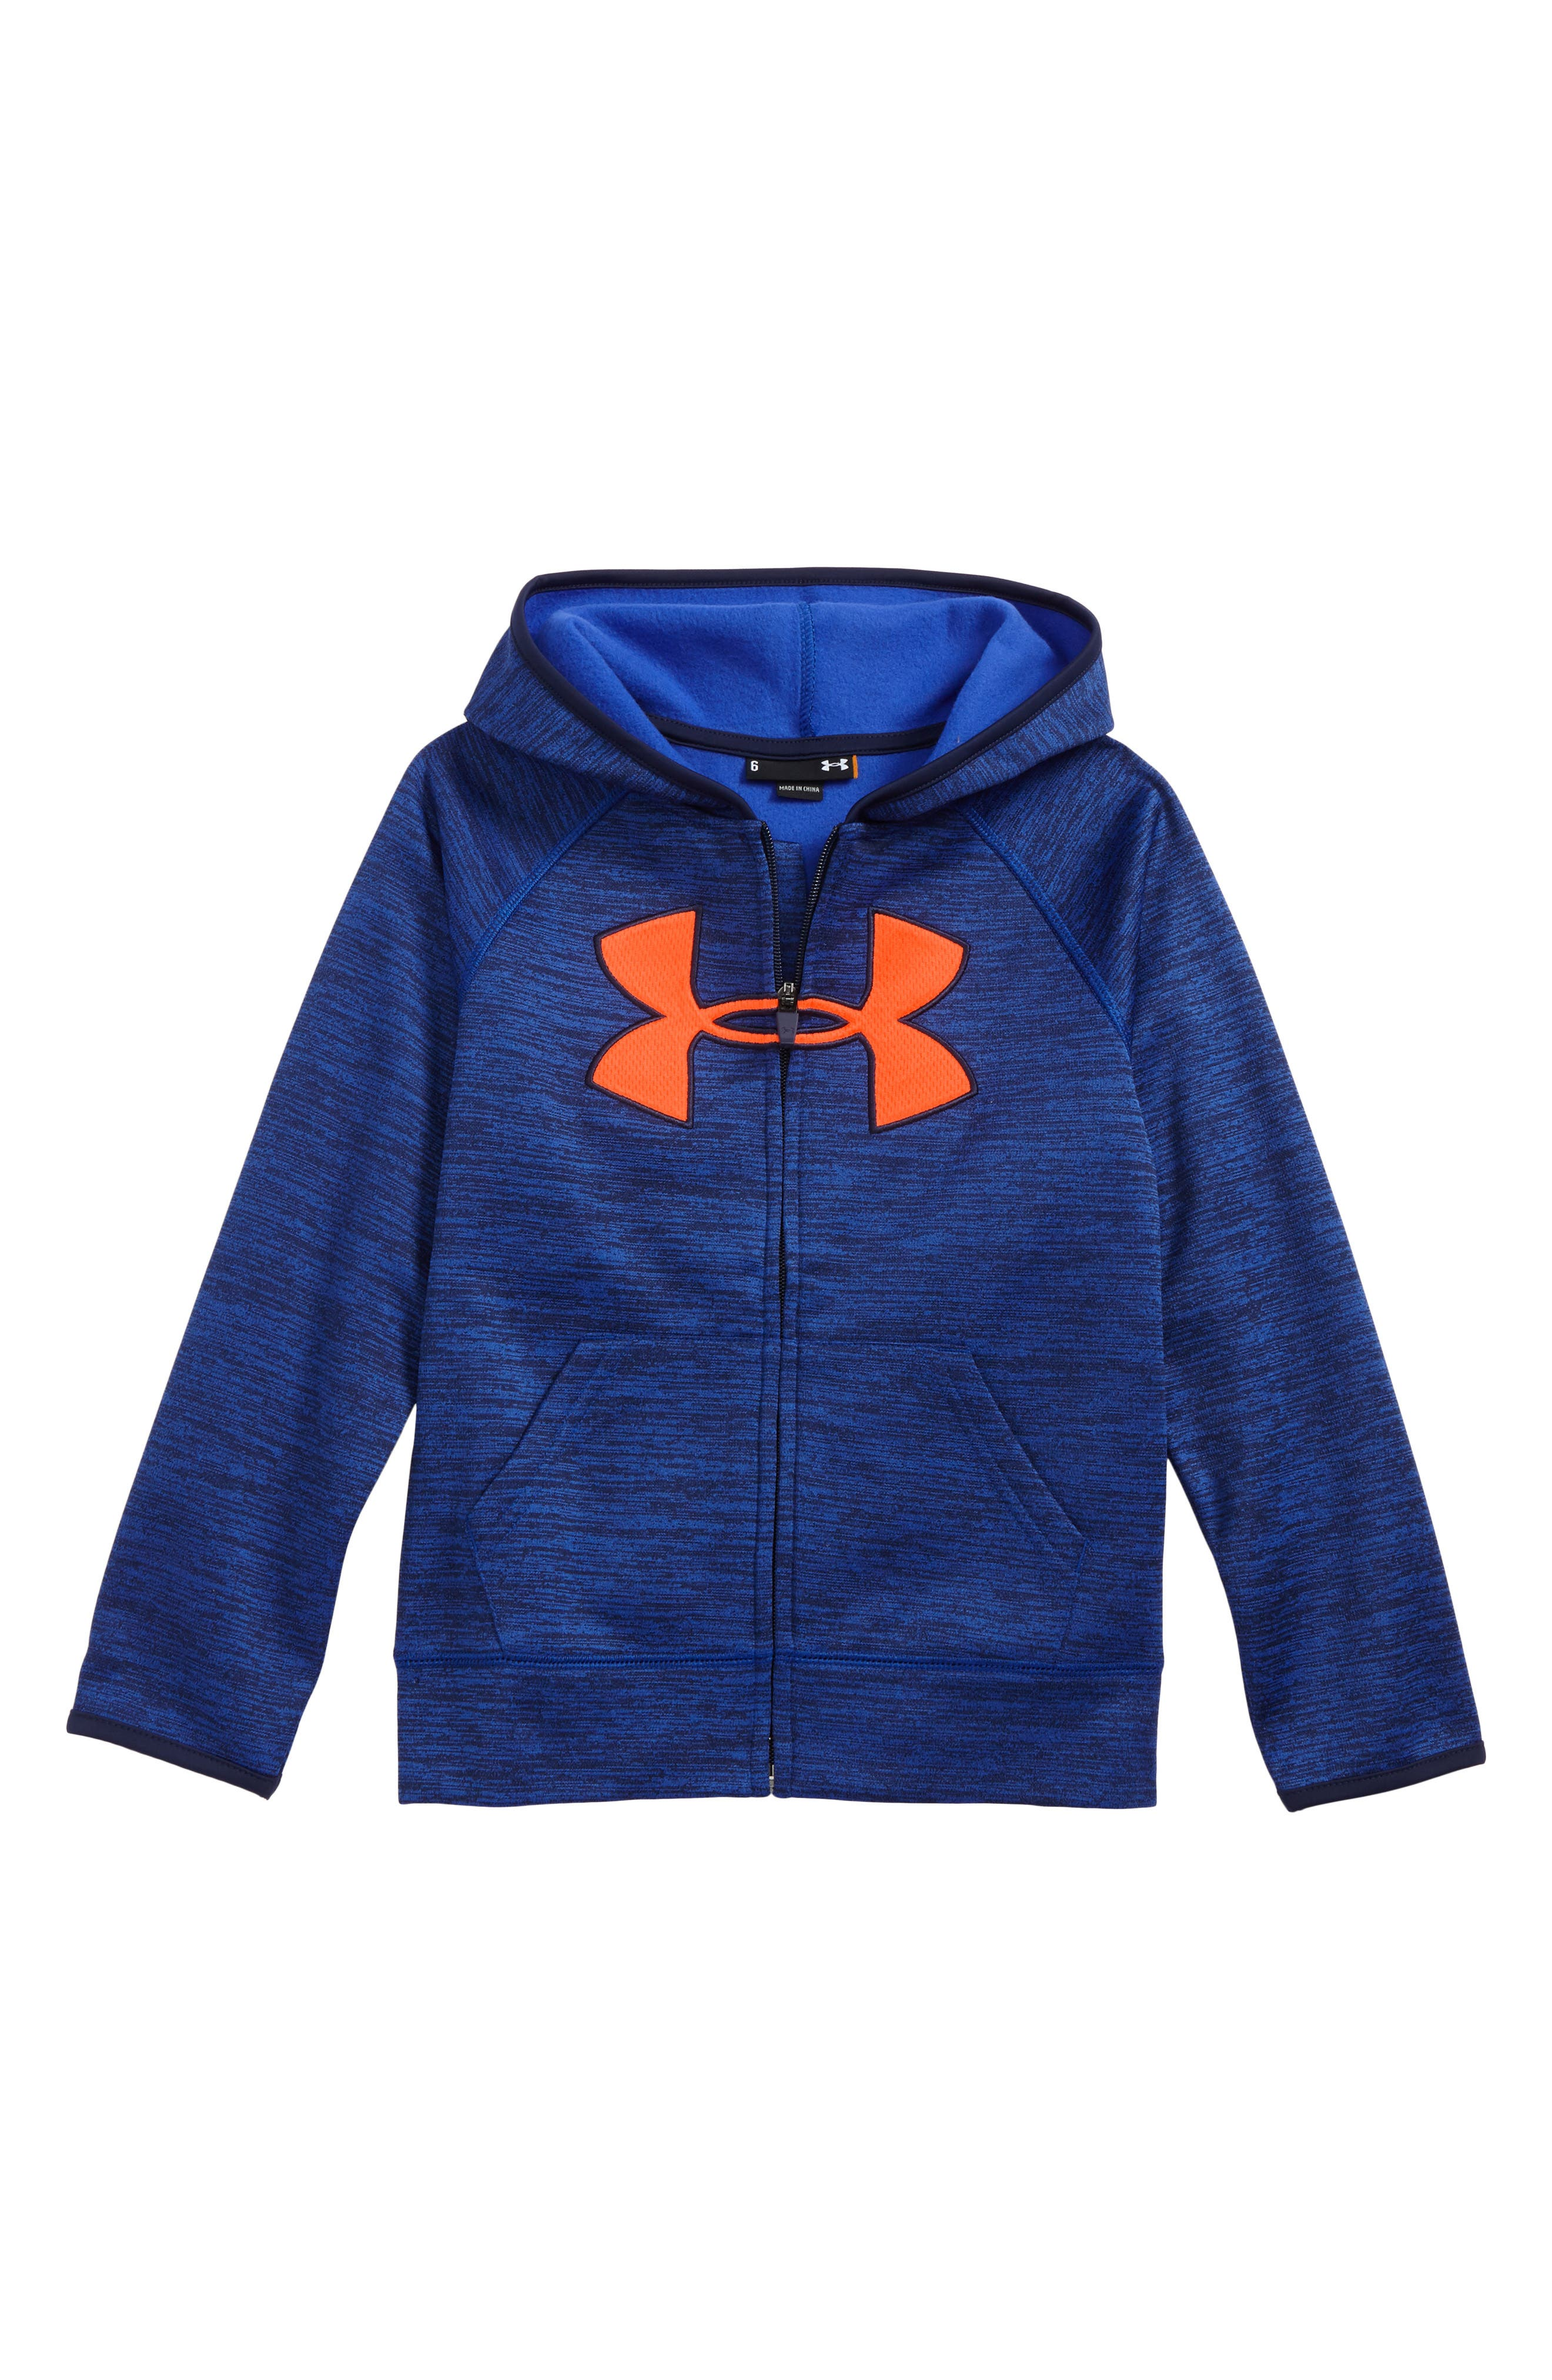 Under Armour Big Logo Zip-Up Hoodie (Toddler Boys & Little Boys)